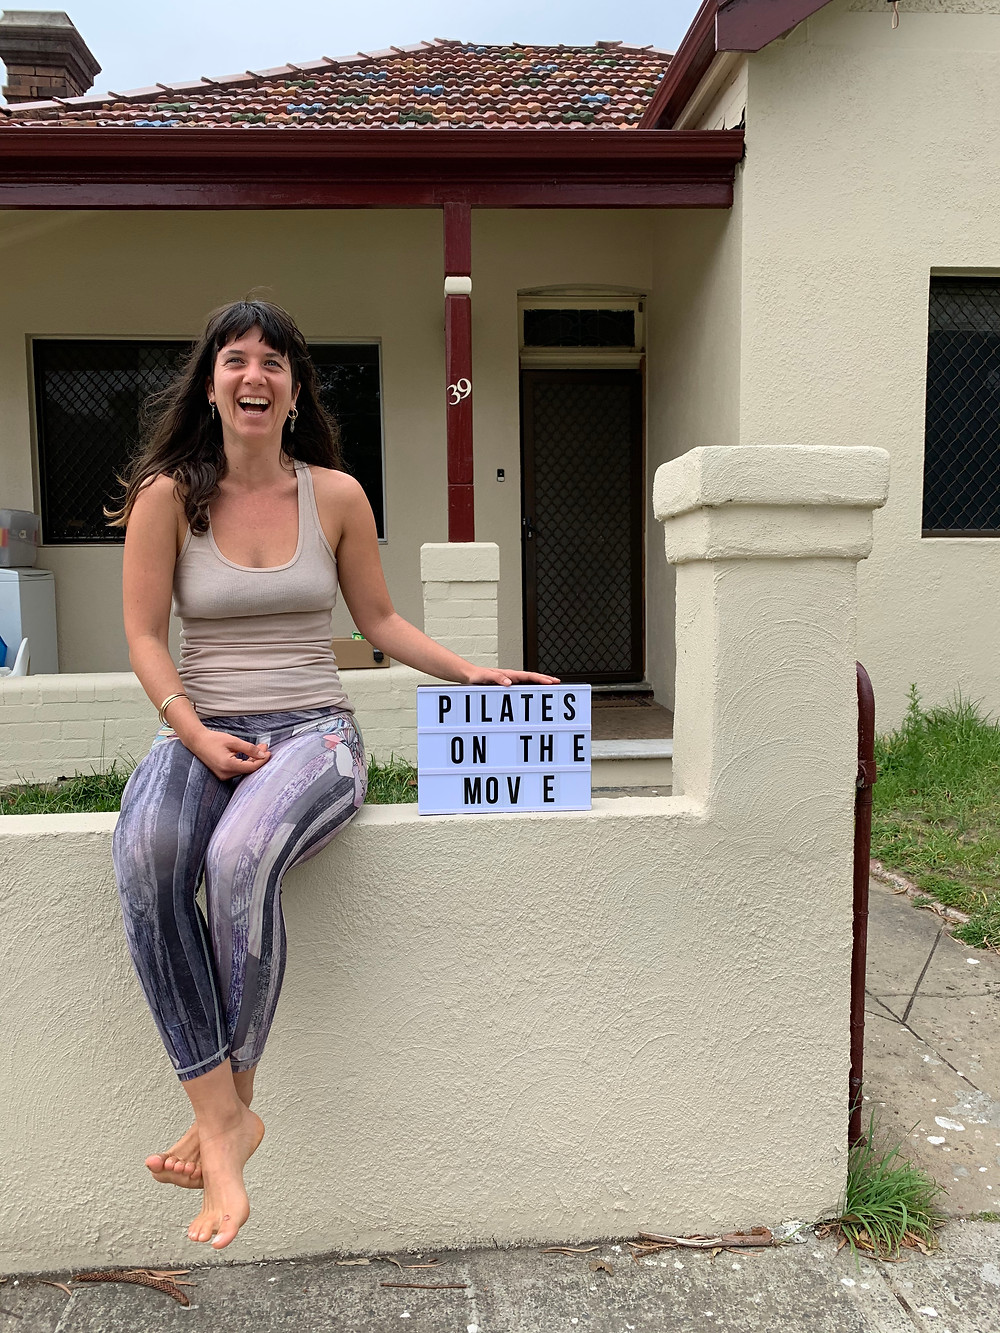 """Shira sitting outside on the move studio smiling and holding a sign that says """"pilates on the move"""""""